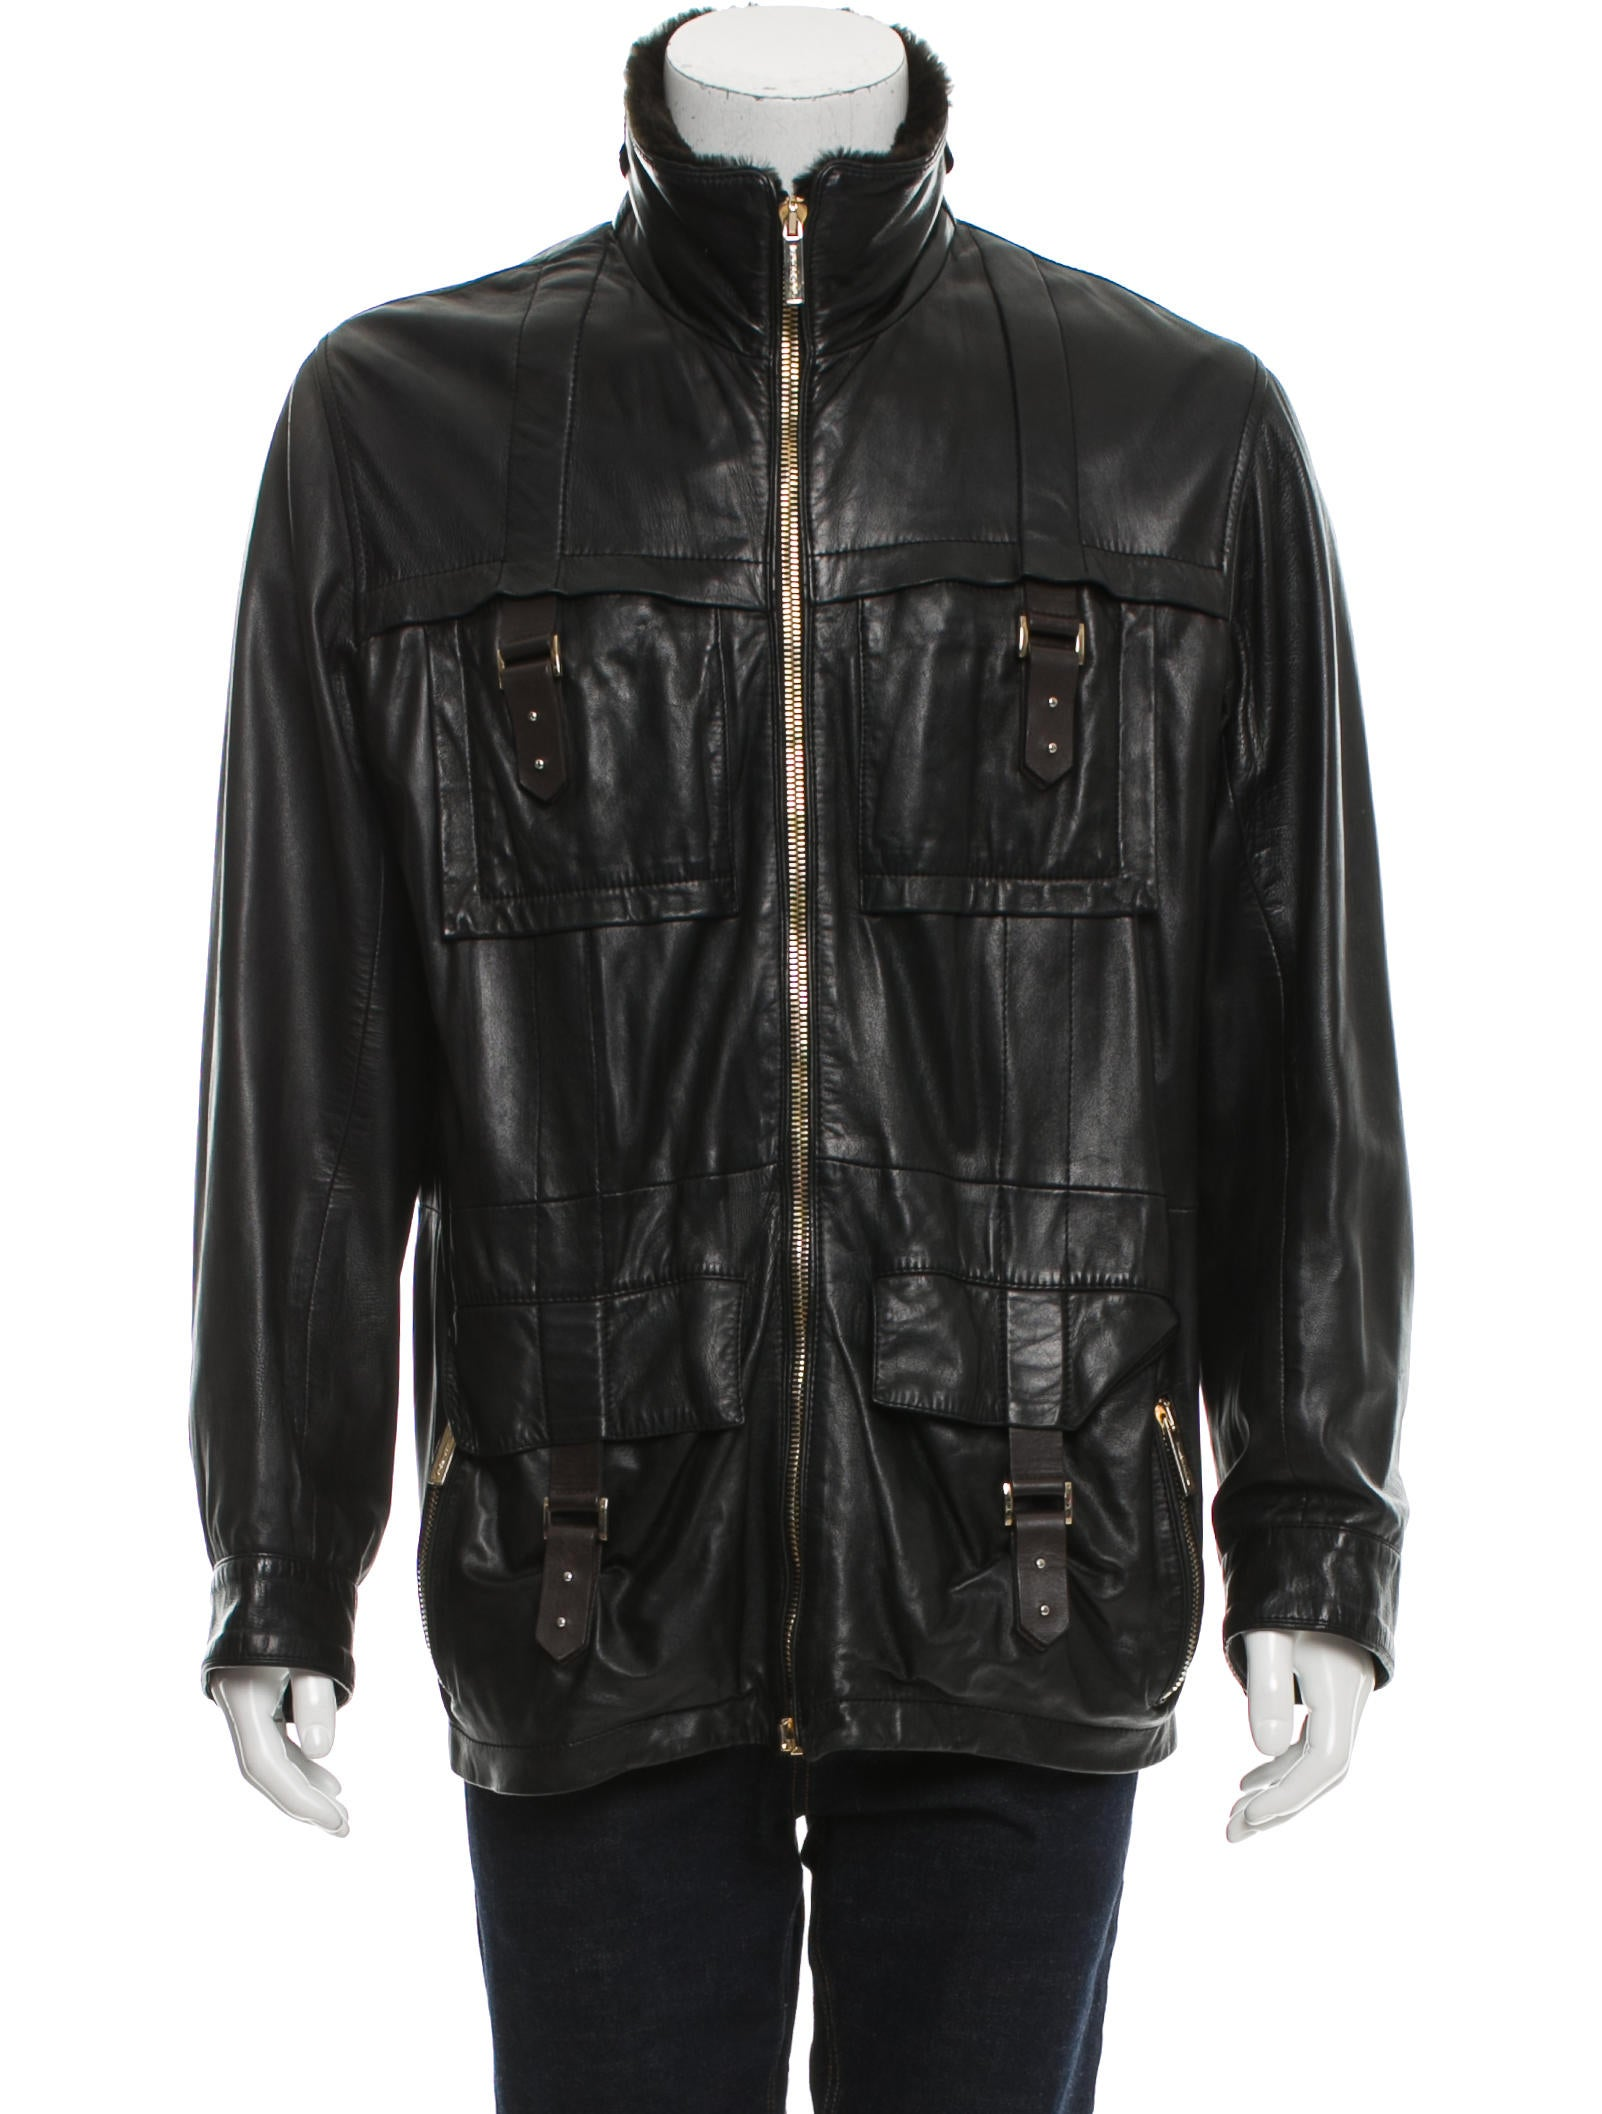 Overstock uses cookies to ensure you get the best experience on our site. If you continue on our site, you consent to the use of such cookies. Learn more. OK Jackets. Clothing & Shoes / Men's Wilda Men's Big & Tall Bubble Well Flaming Skull Black Leather Jacket. 9 Reviews.